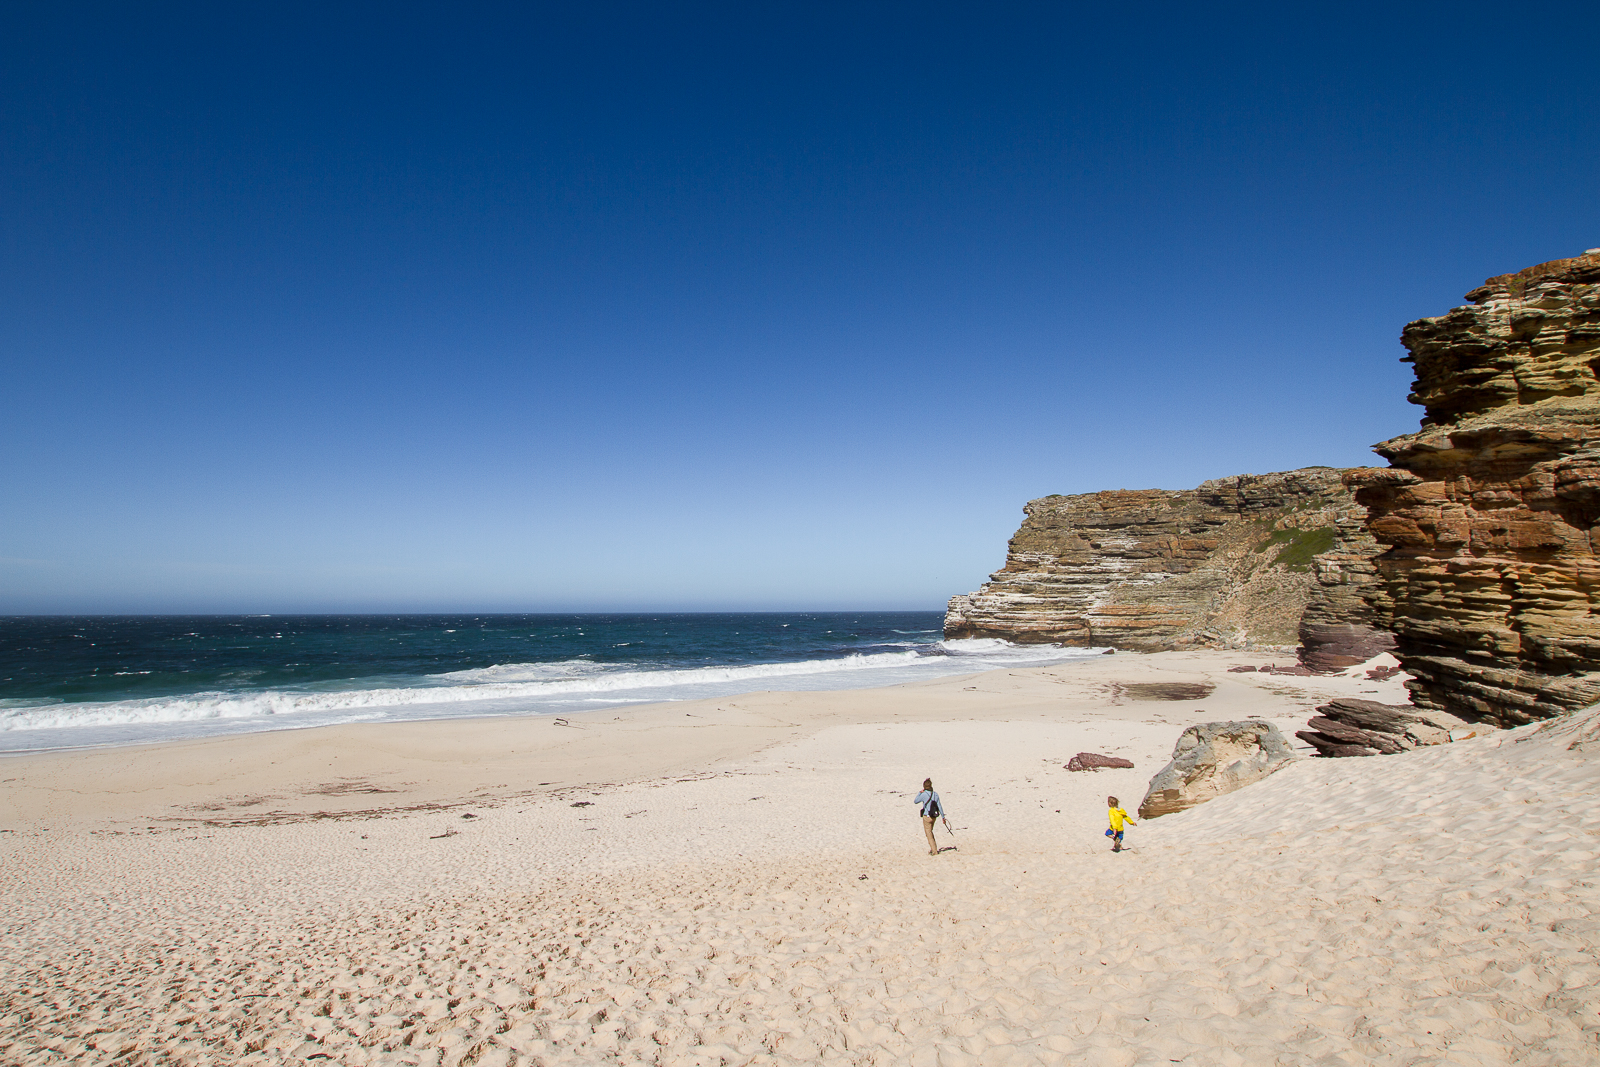 Diaz Beach, Cape of Good Hope, Afrique du Sud - Partis pour